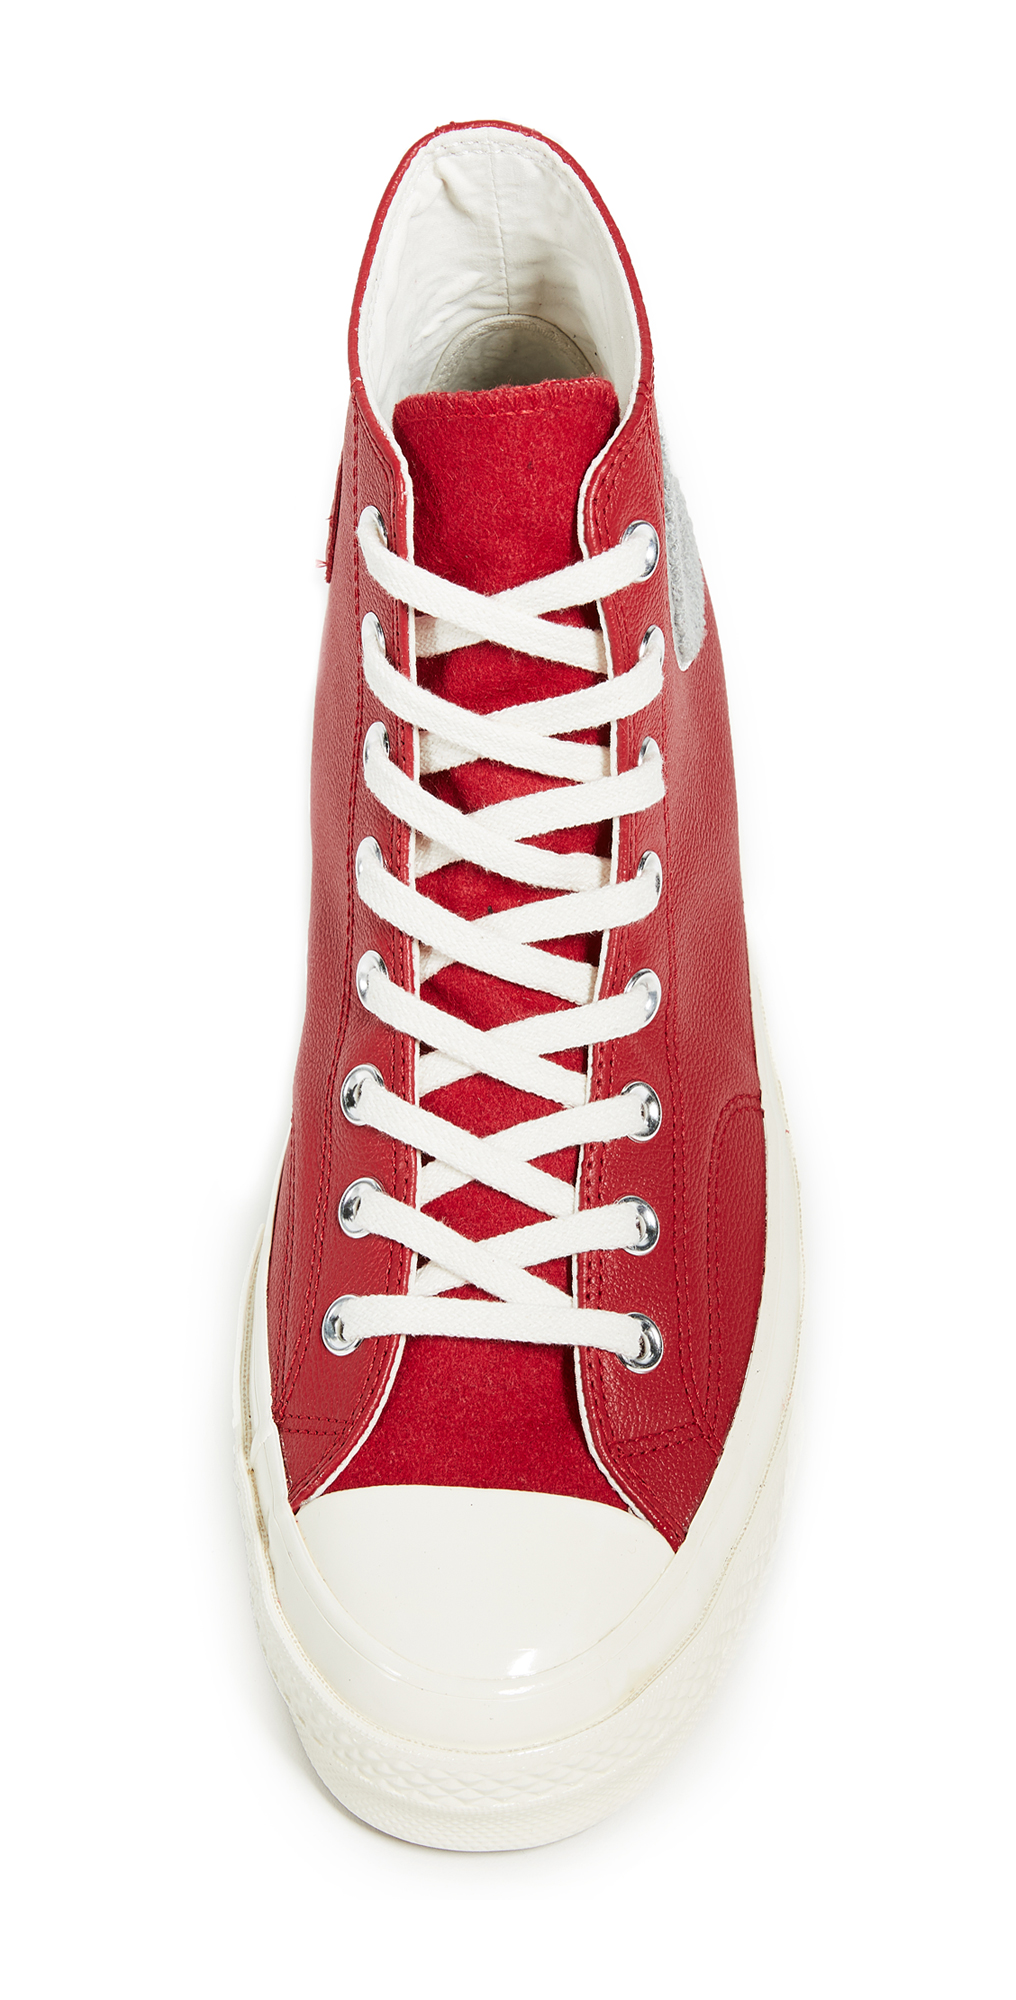 Converse Chuck Taylor 70s Wordmark High Top Sneakers | EAST DANE